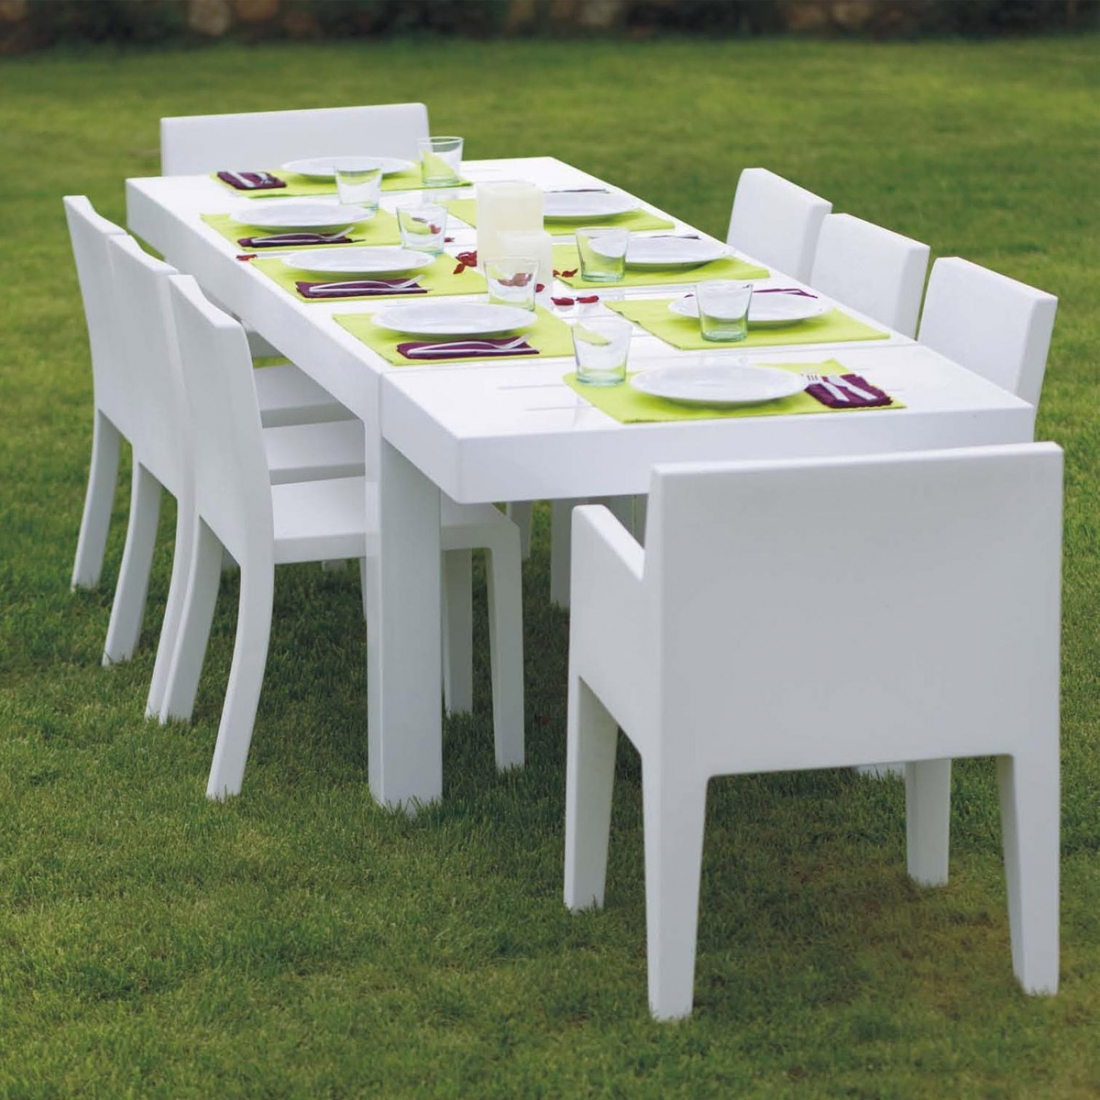 table de jardin design 10 personnes jut par vondom